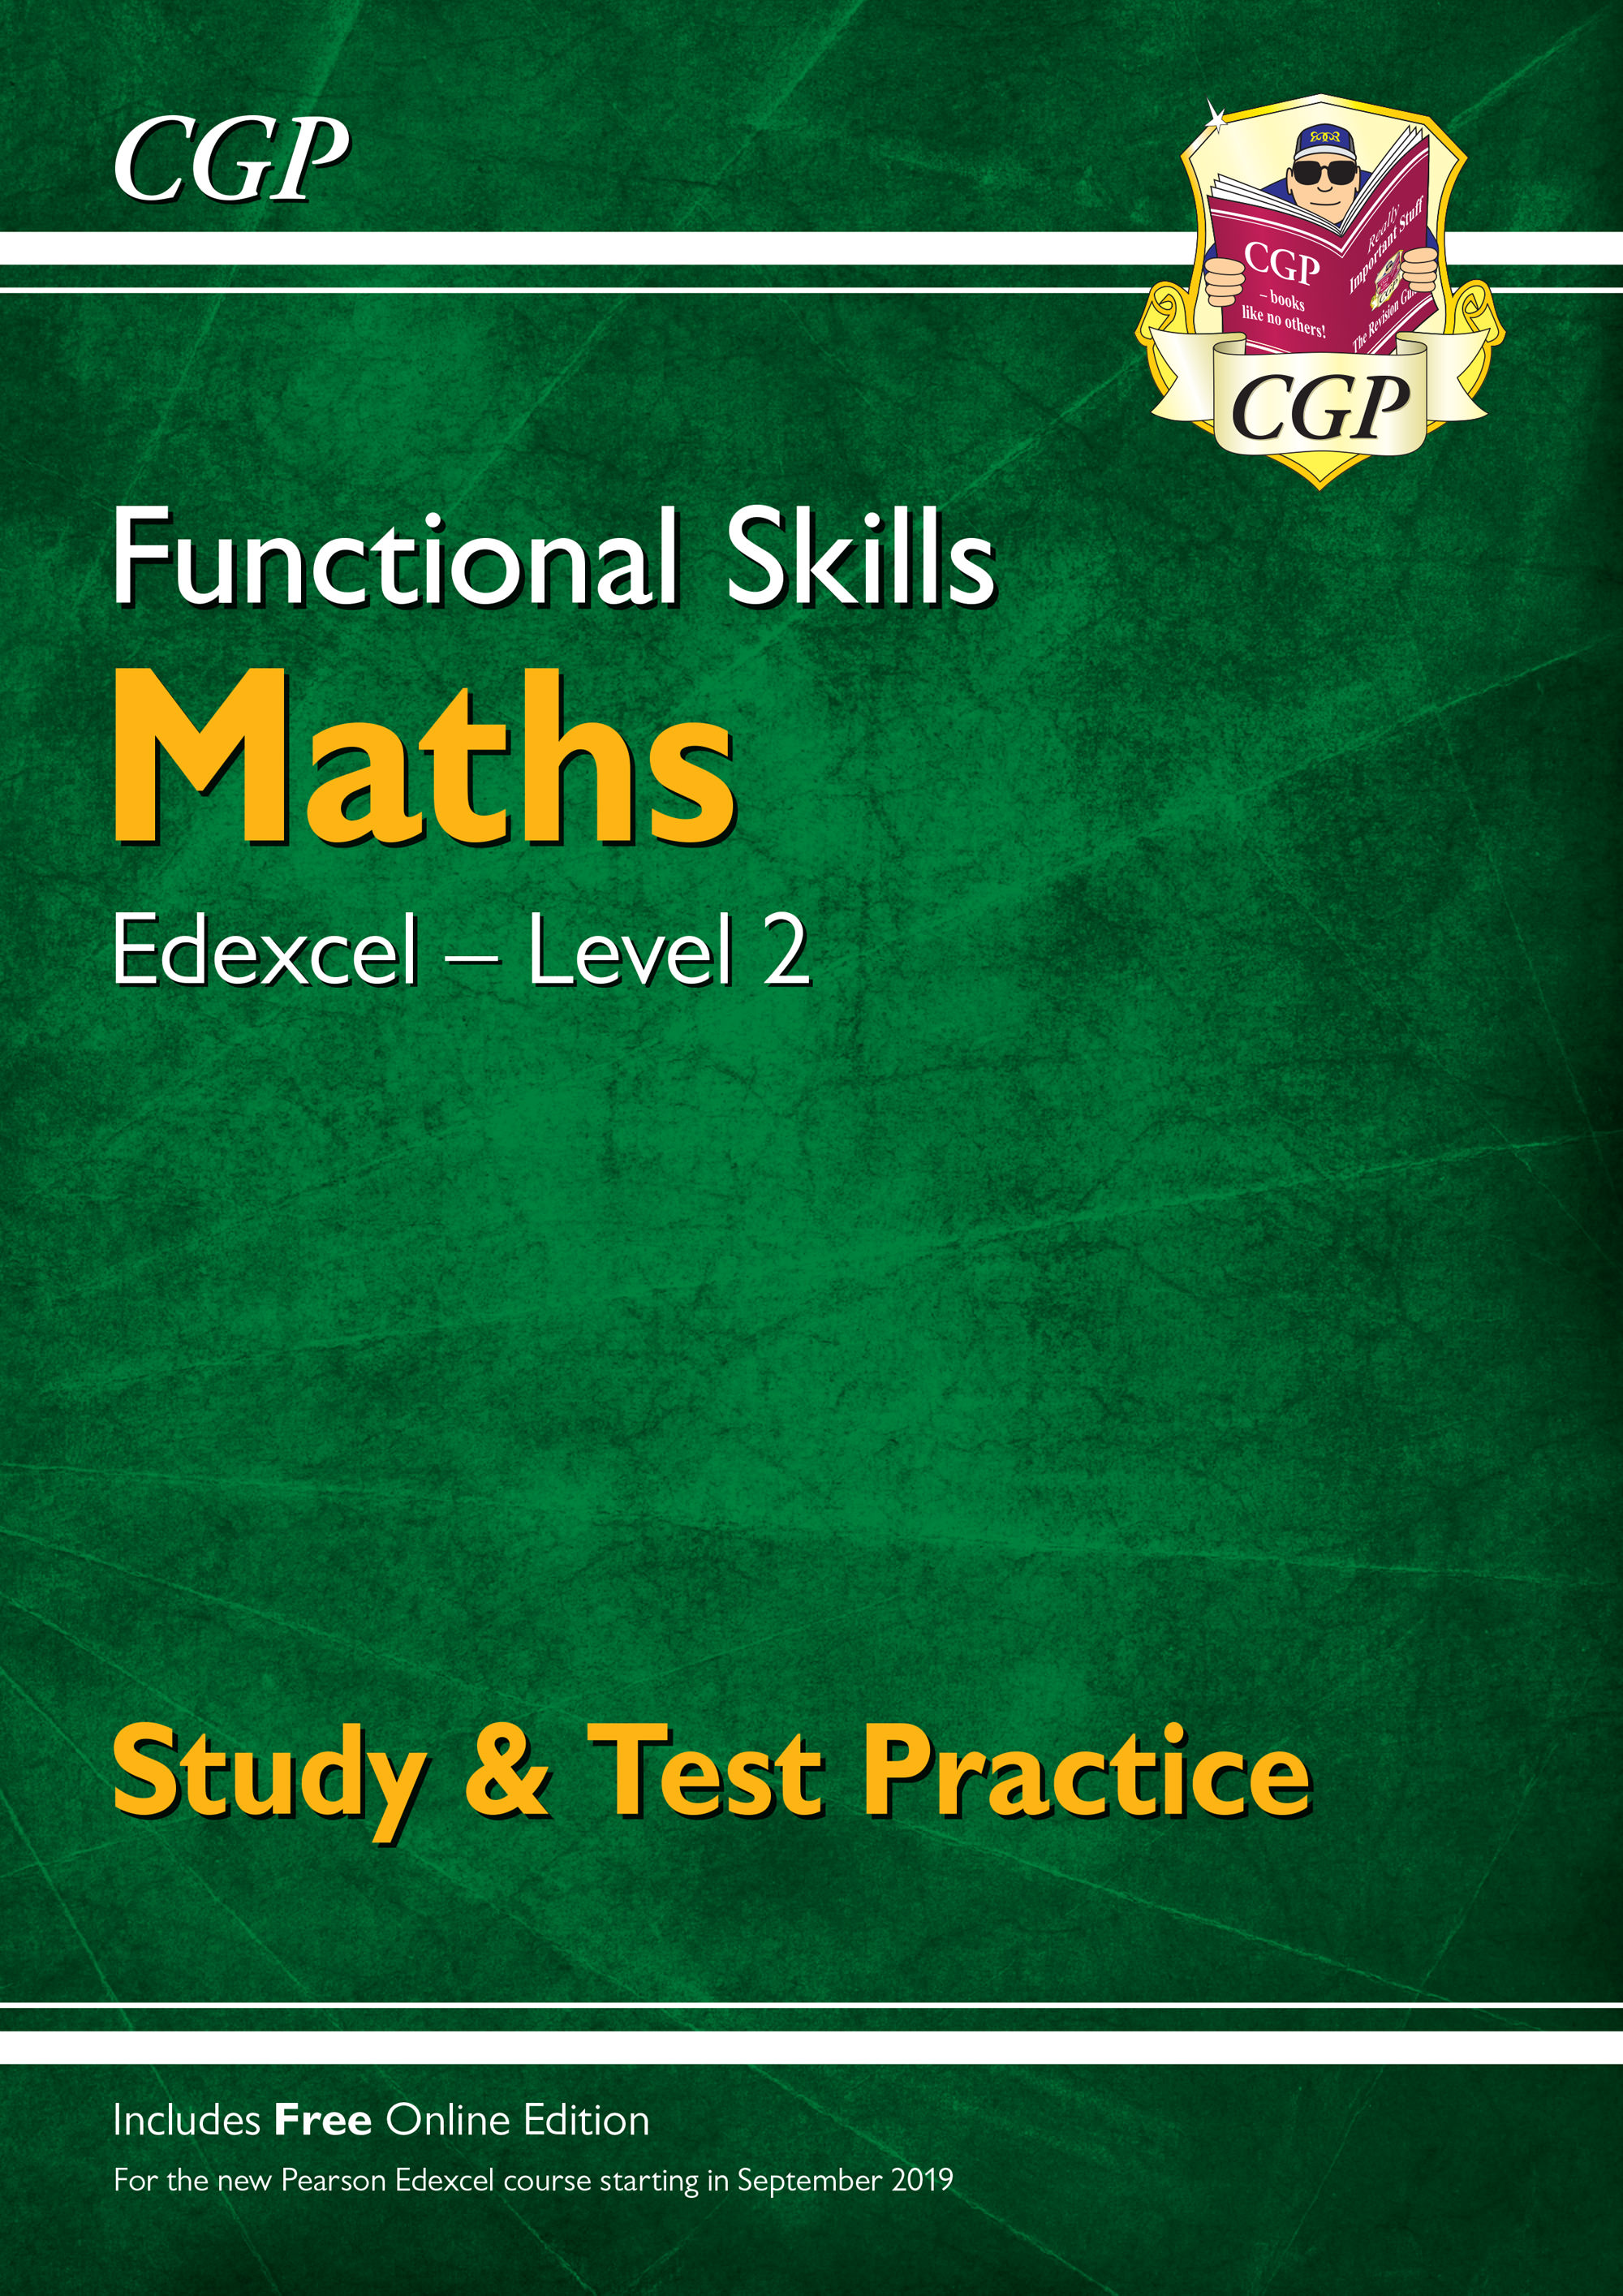 M2ESRA1 - Functional Skills Maths: Edexcel Level 2 - Study & Test Practice (for 2021 & beyond)